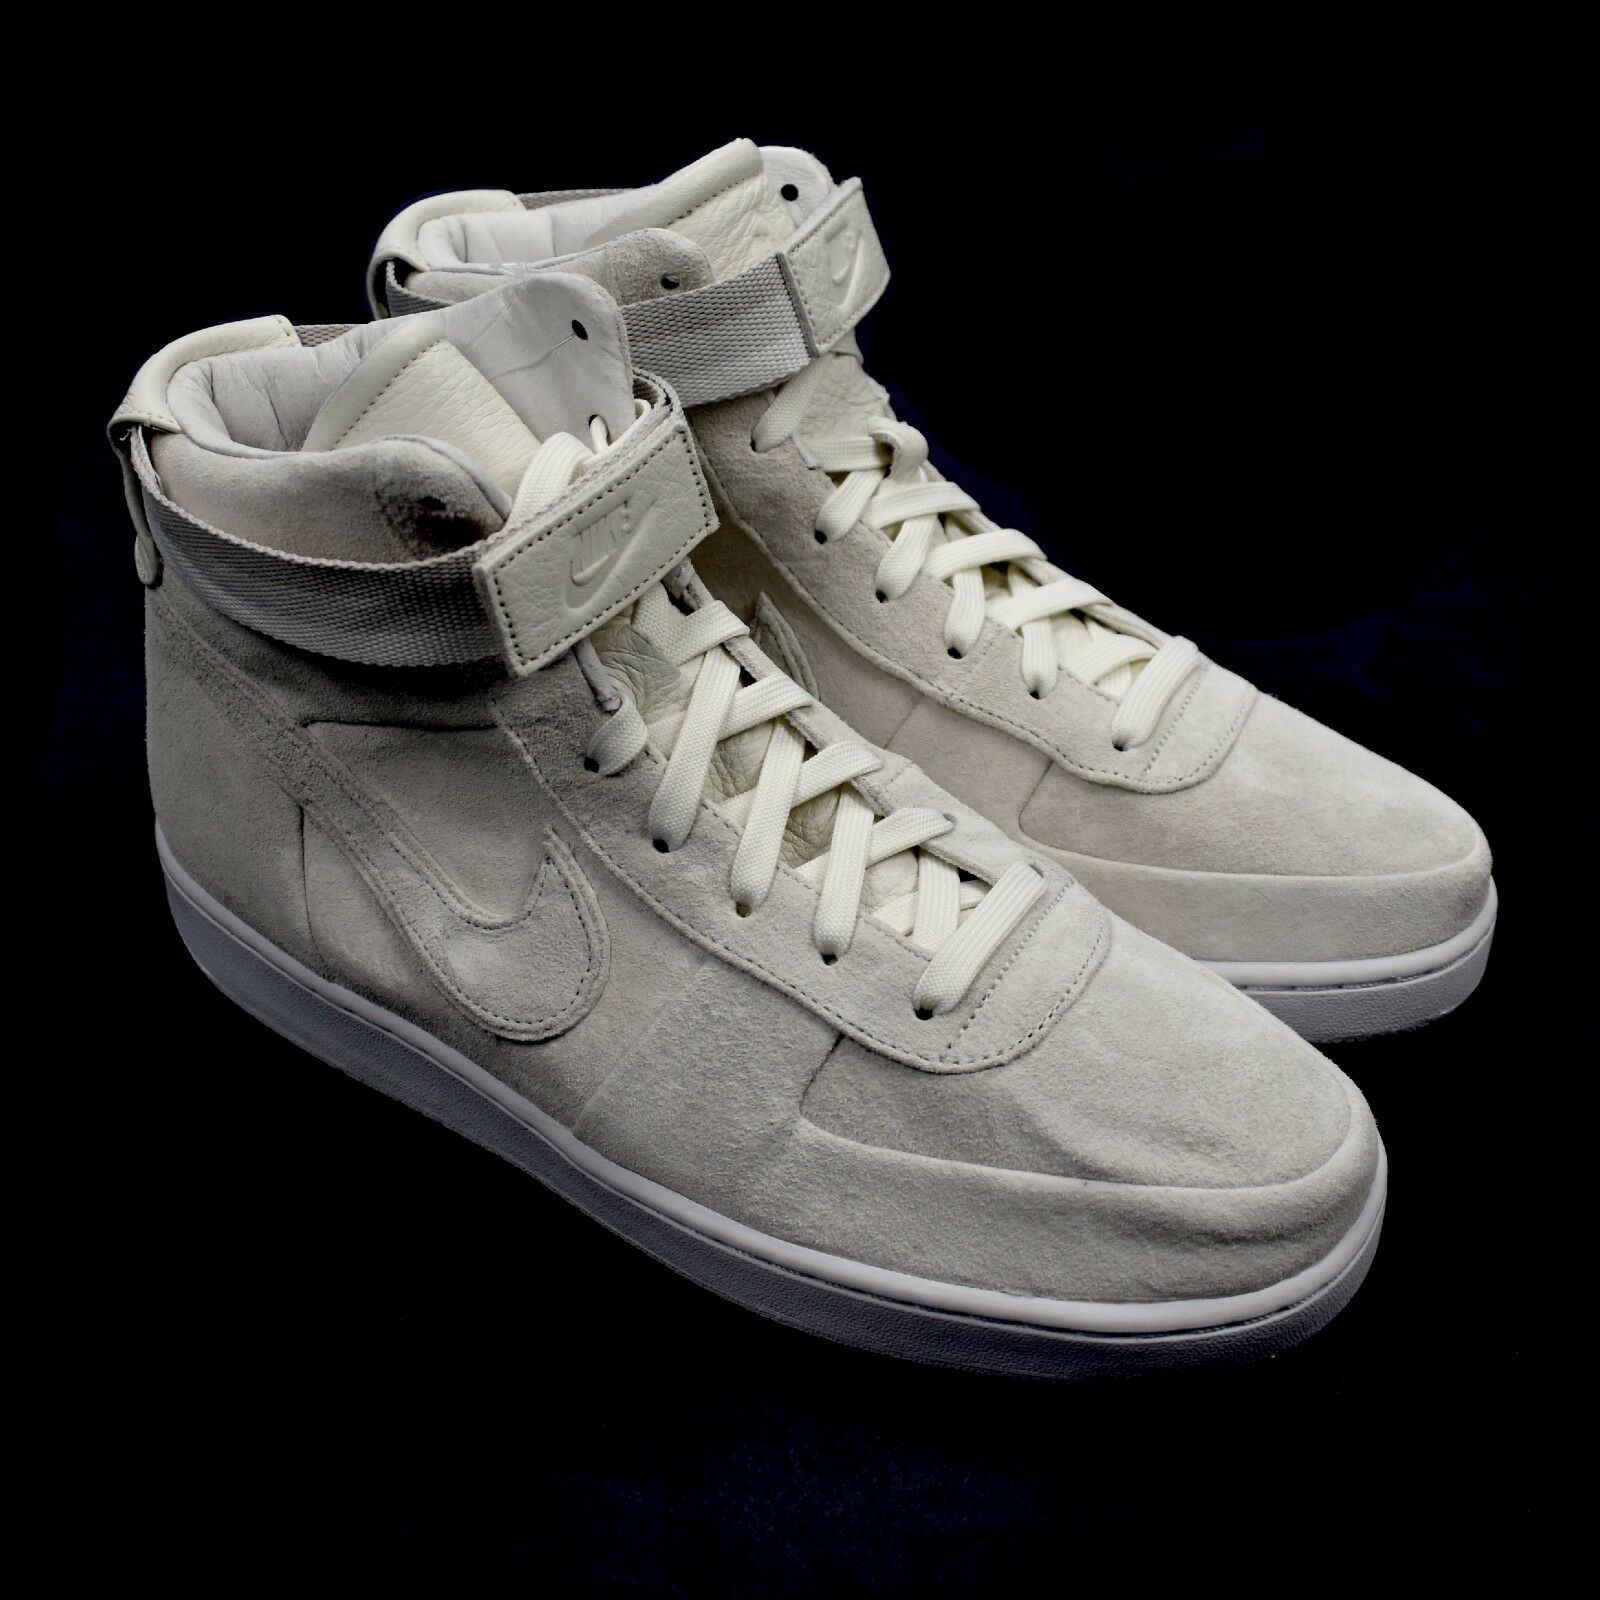 NWT Nike John Elliott Men's White Vandal High PRM Sail White Men's Suede Sneakers AUTHENTIC 1091b7